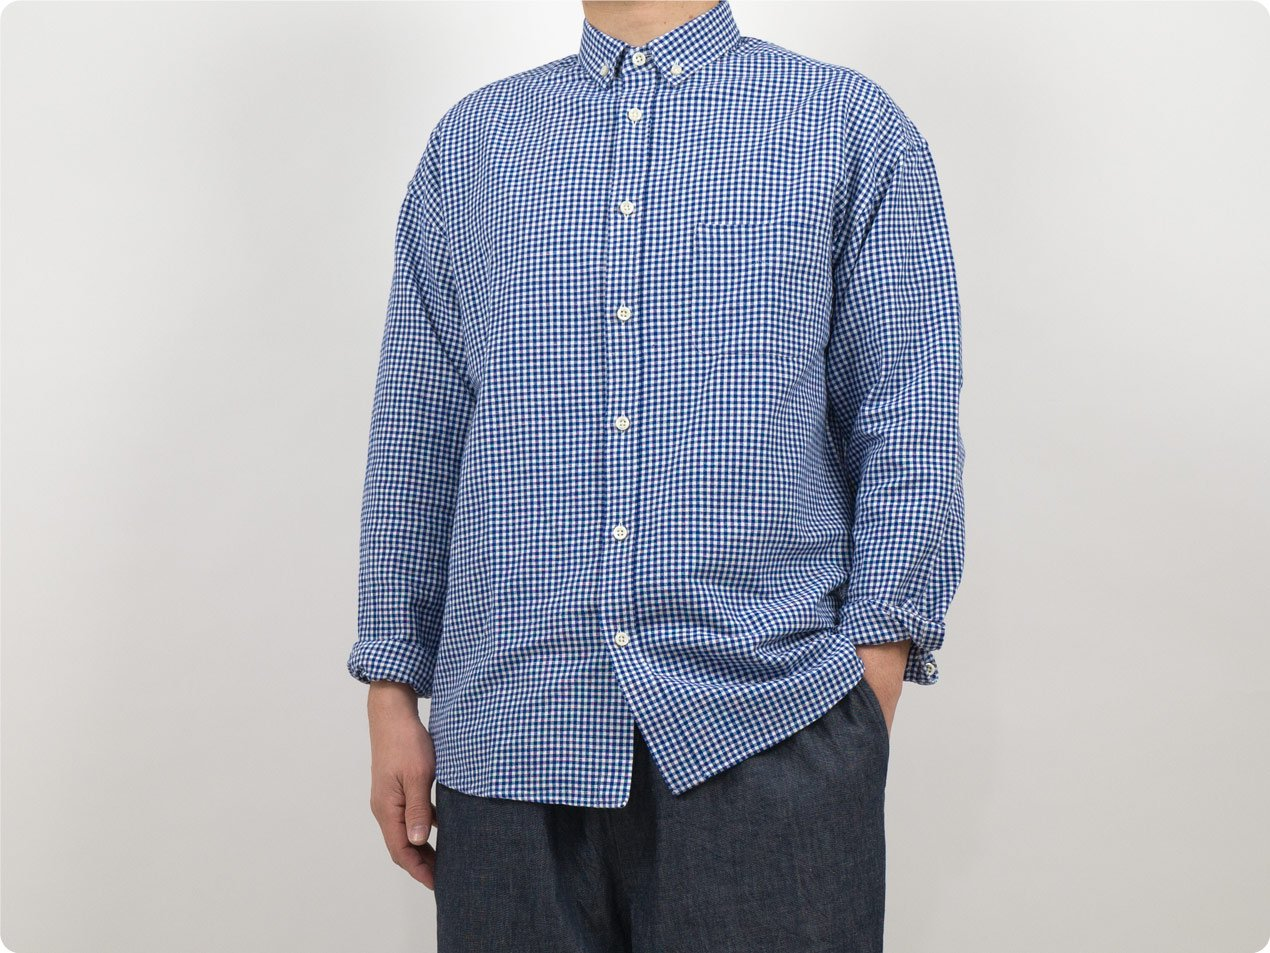 maillot sunset relax B.D. shirts BLUE GINGHAM